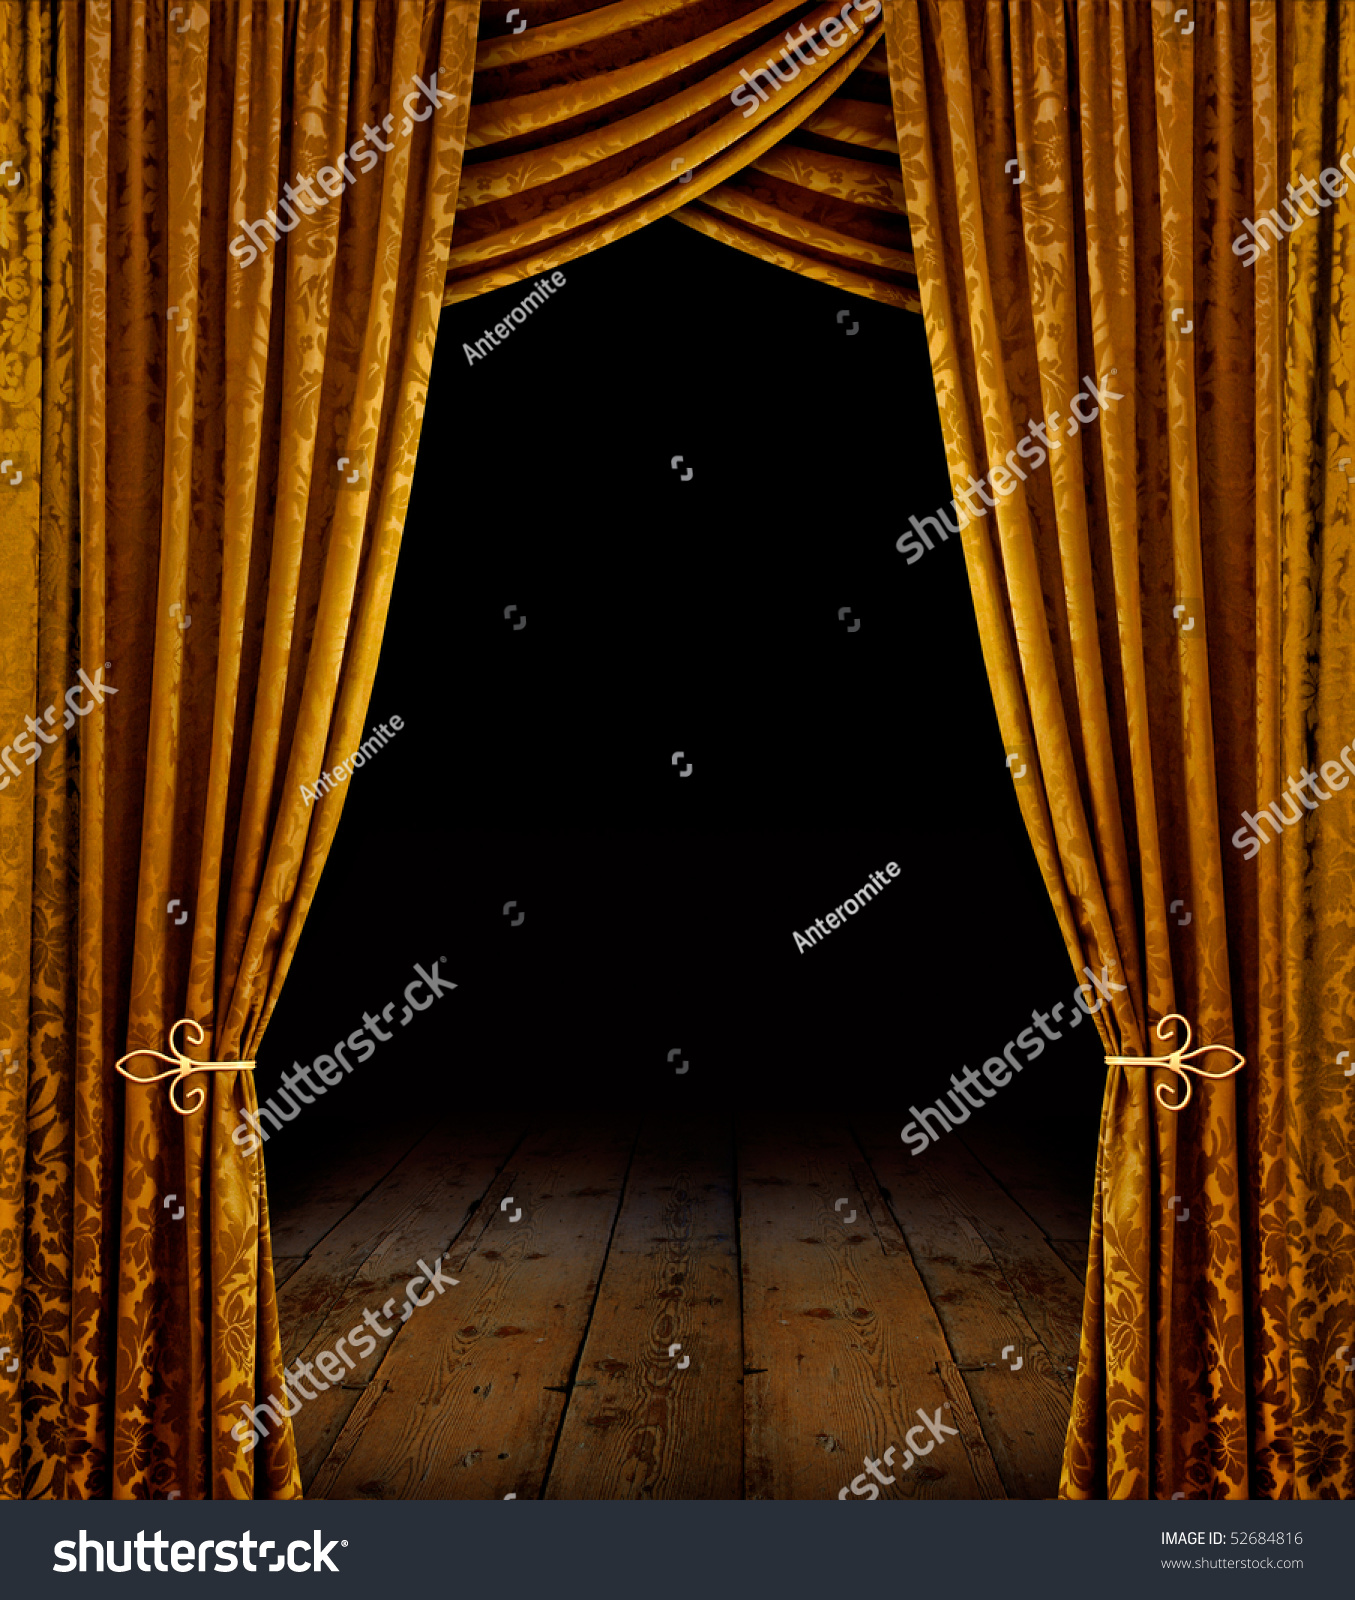 Open Stage Curtains - Golden curtains reveal open stage with wooden floor